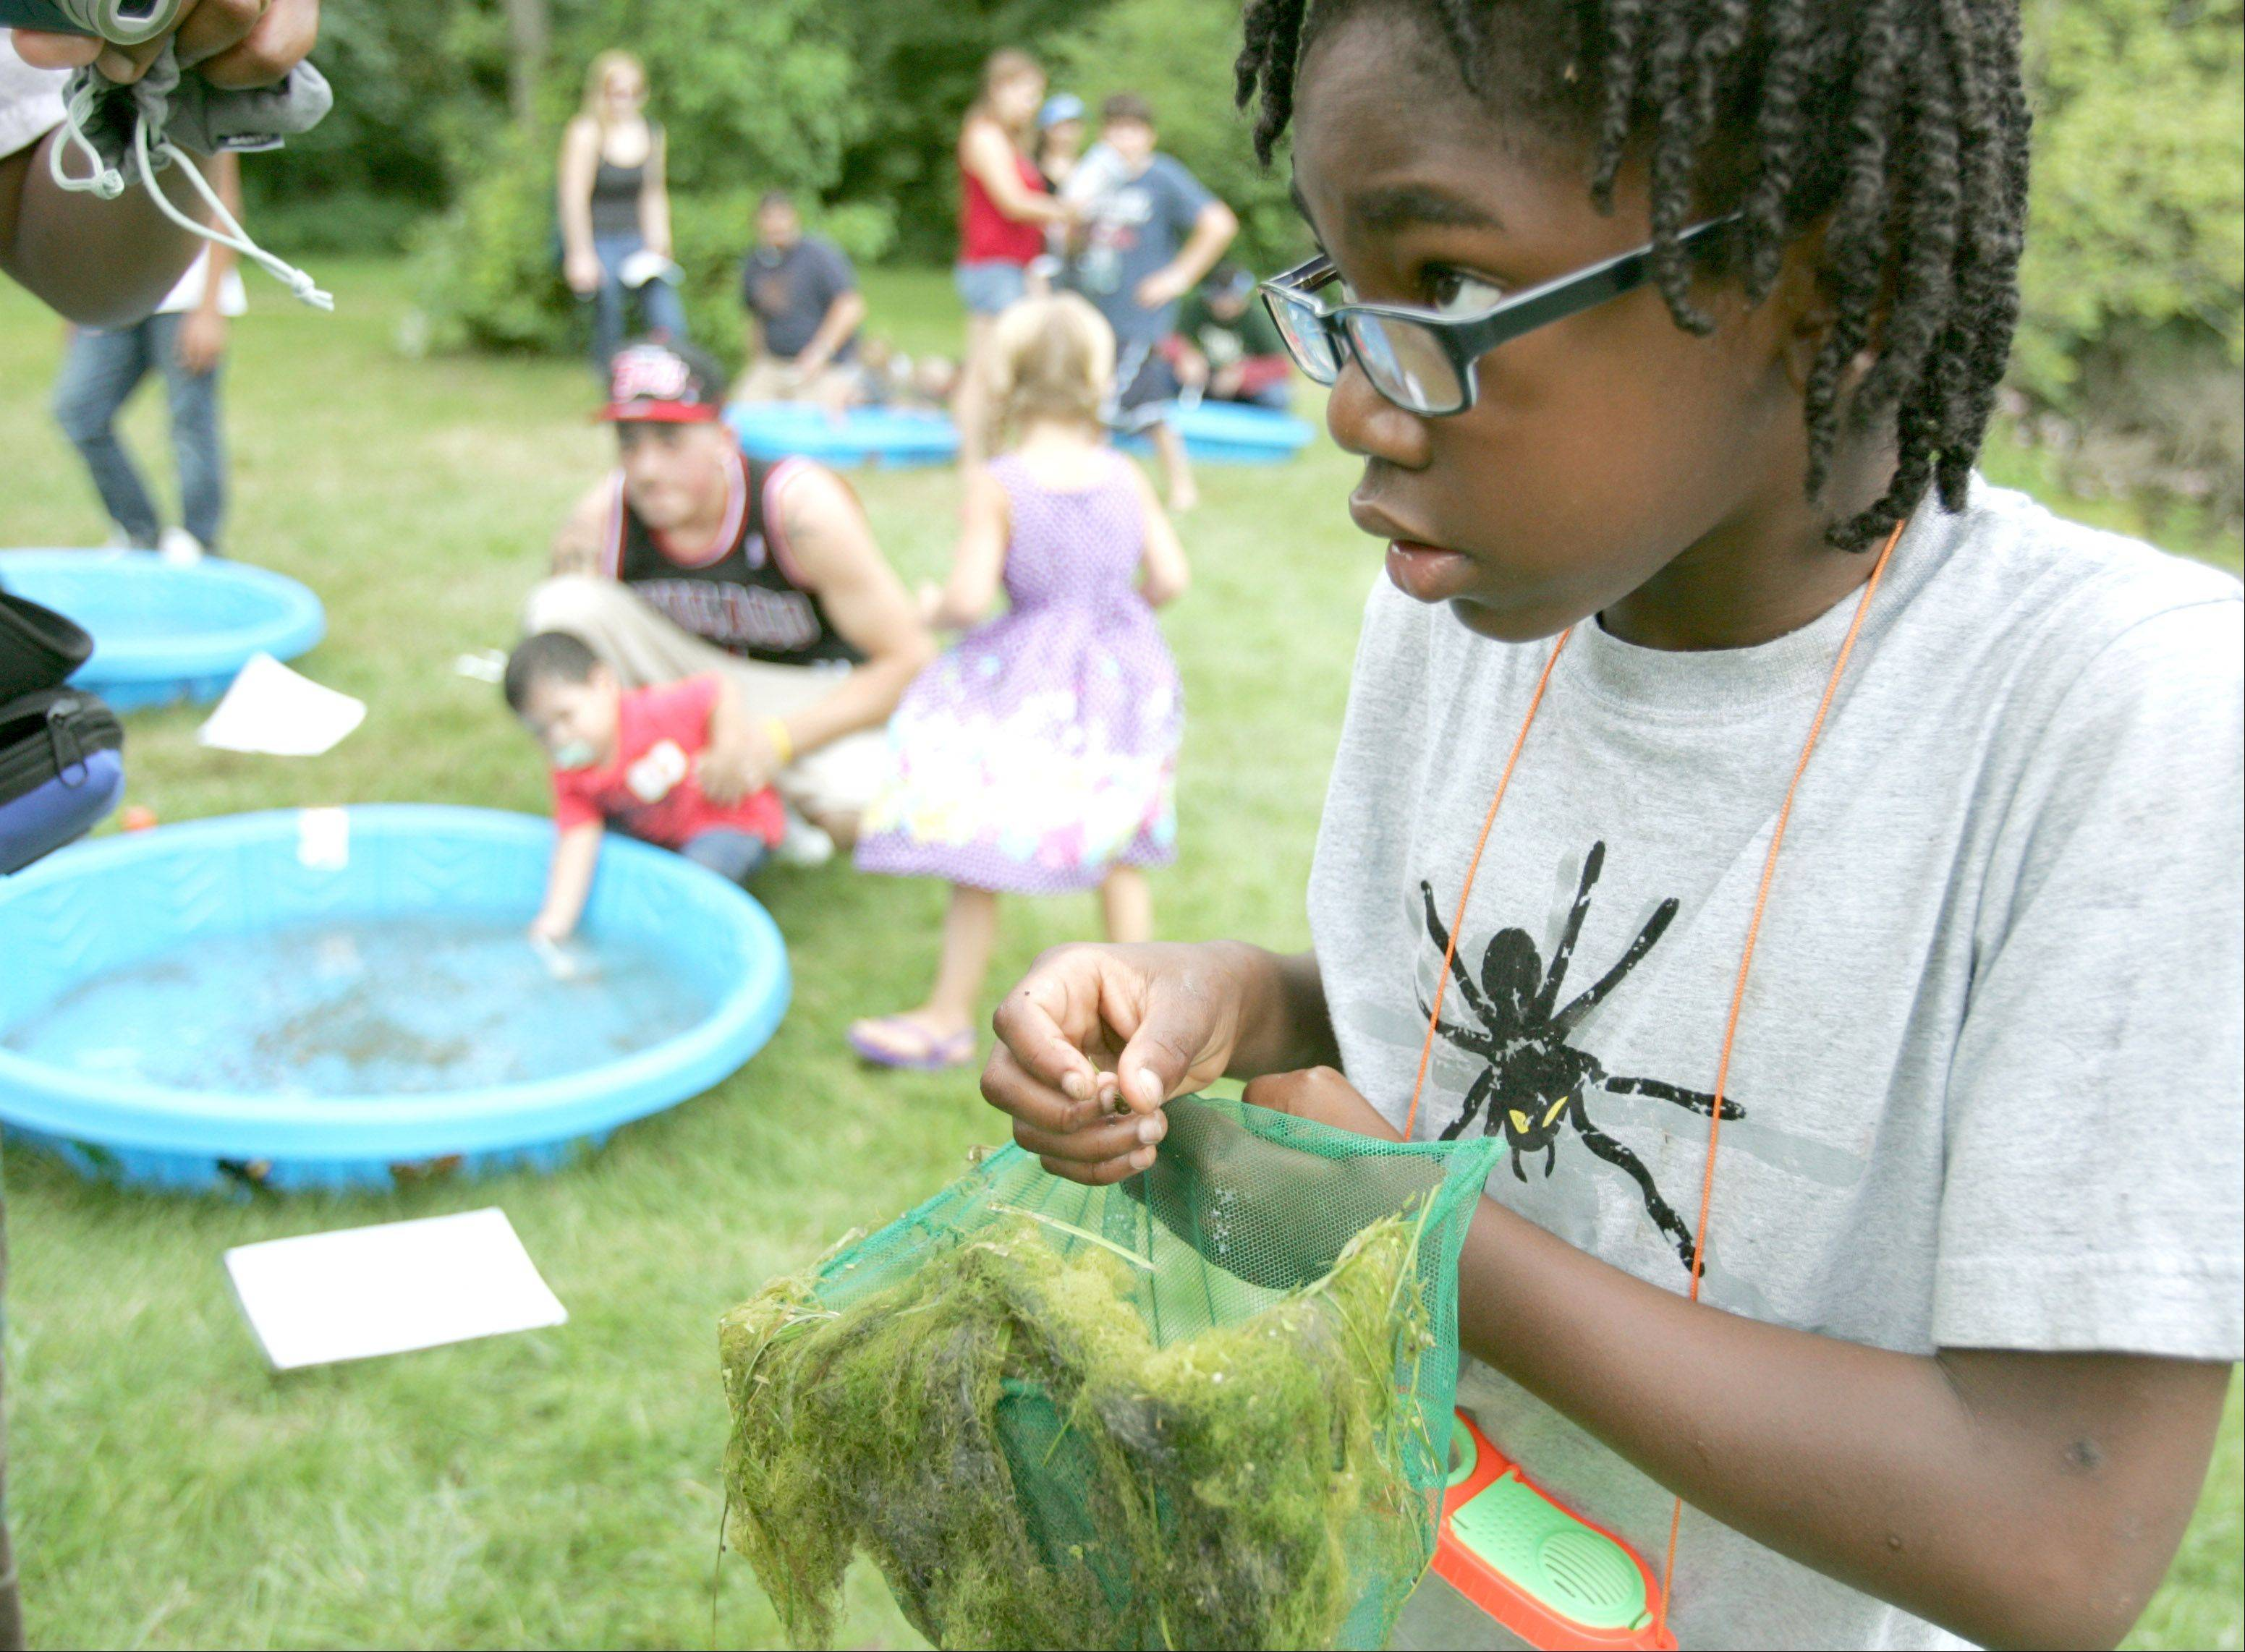 Antonio Houston, 8, of Aurora investigates dragonfly larvae during last year's Bug Fest at the Red Oak Nature Center in North Aurora. This year's festival is set for 9 a.m. to 1 p.m. Saturday, Aug. 25.